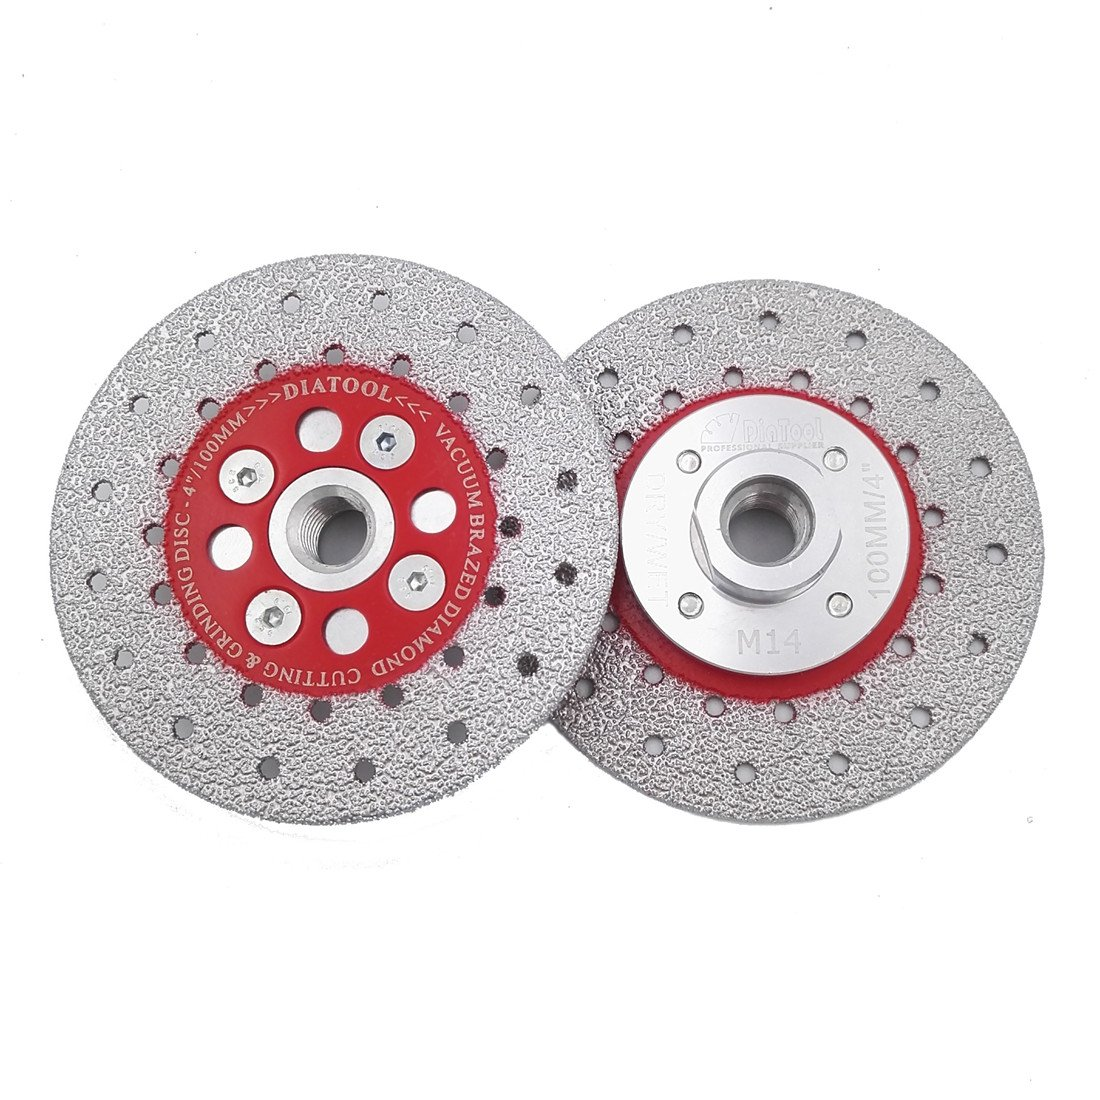 DIATOOL 1pc 4.5' Premium Quality Double Sided Vacuum Brazed Diamond Cutting Grinding Disc with M14 Thread profiling Edges Smoothing Out Inside sinkhole cuts Smoothing SHANGHAI DIATOOL CO. LTD.